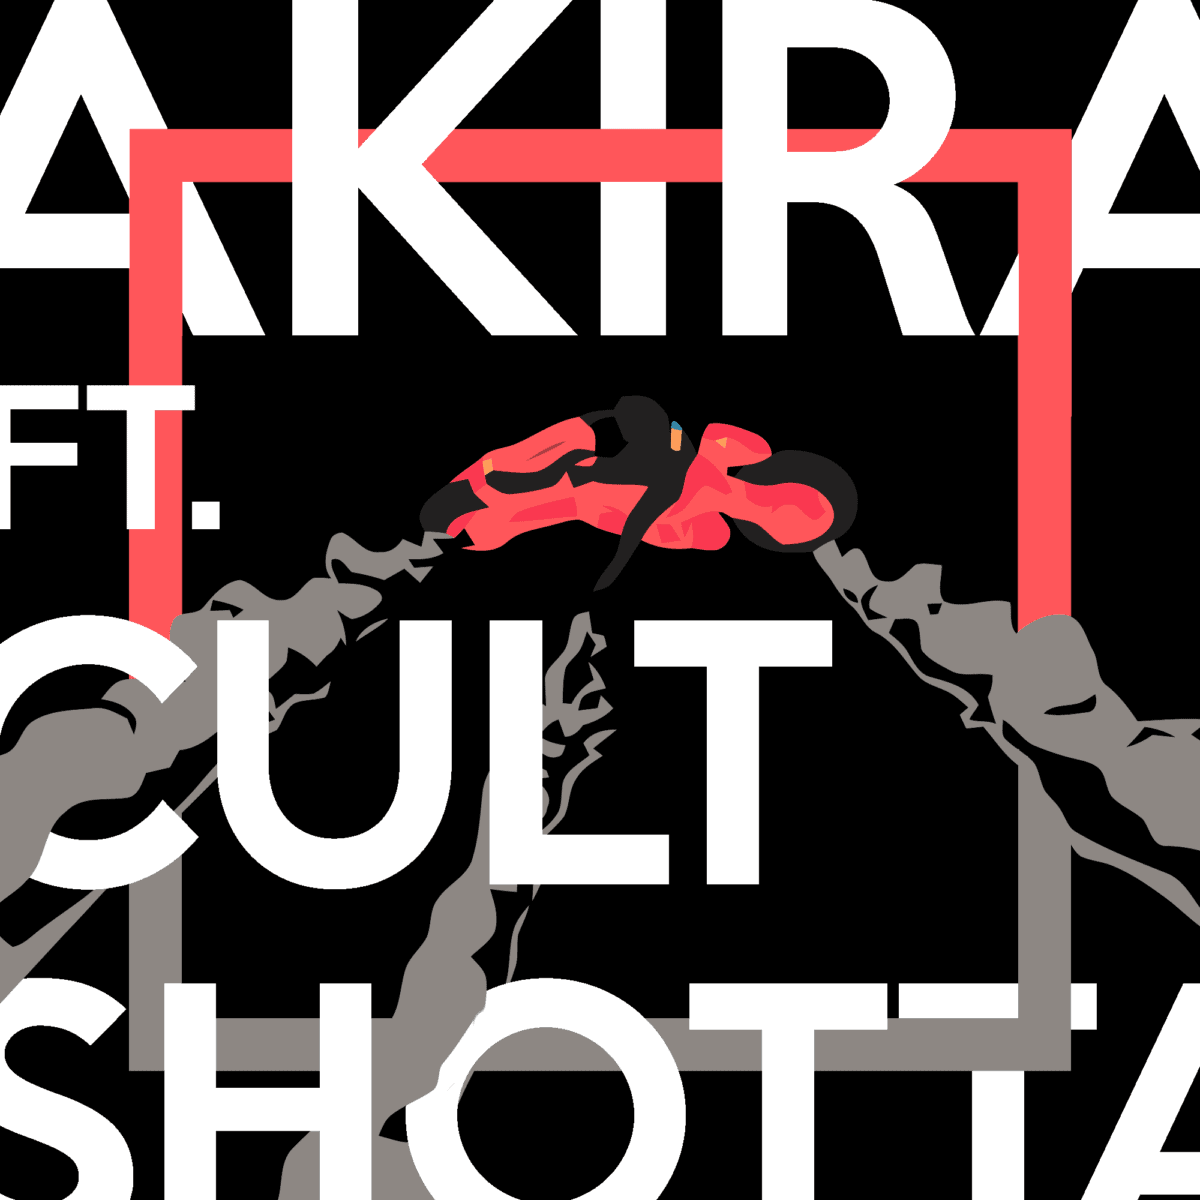 AKIRA ft. Cult Shøtta [AUD'$ Exclusive Premiere]